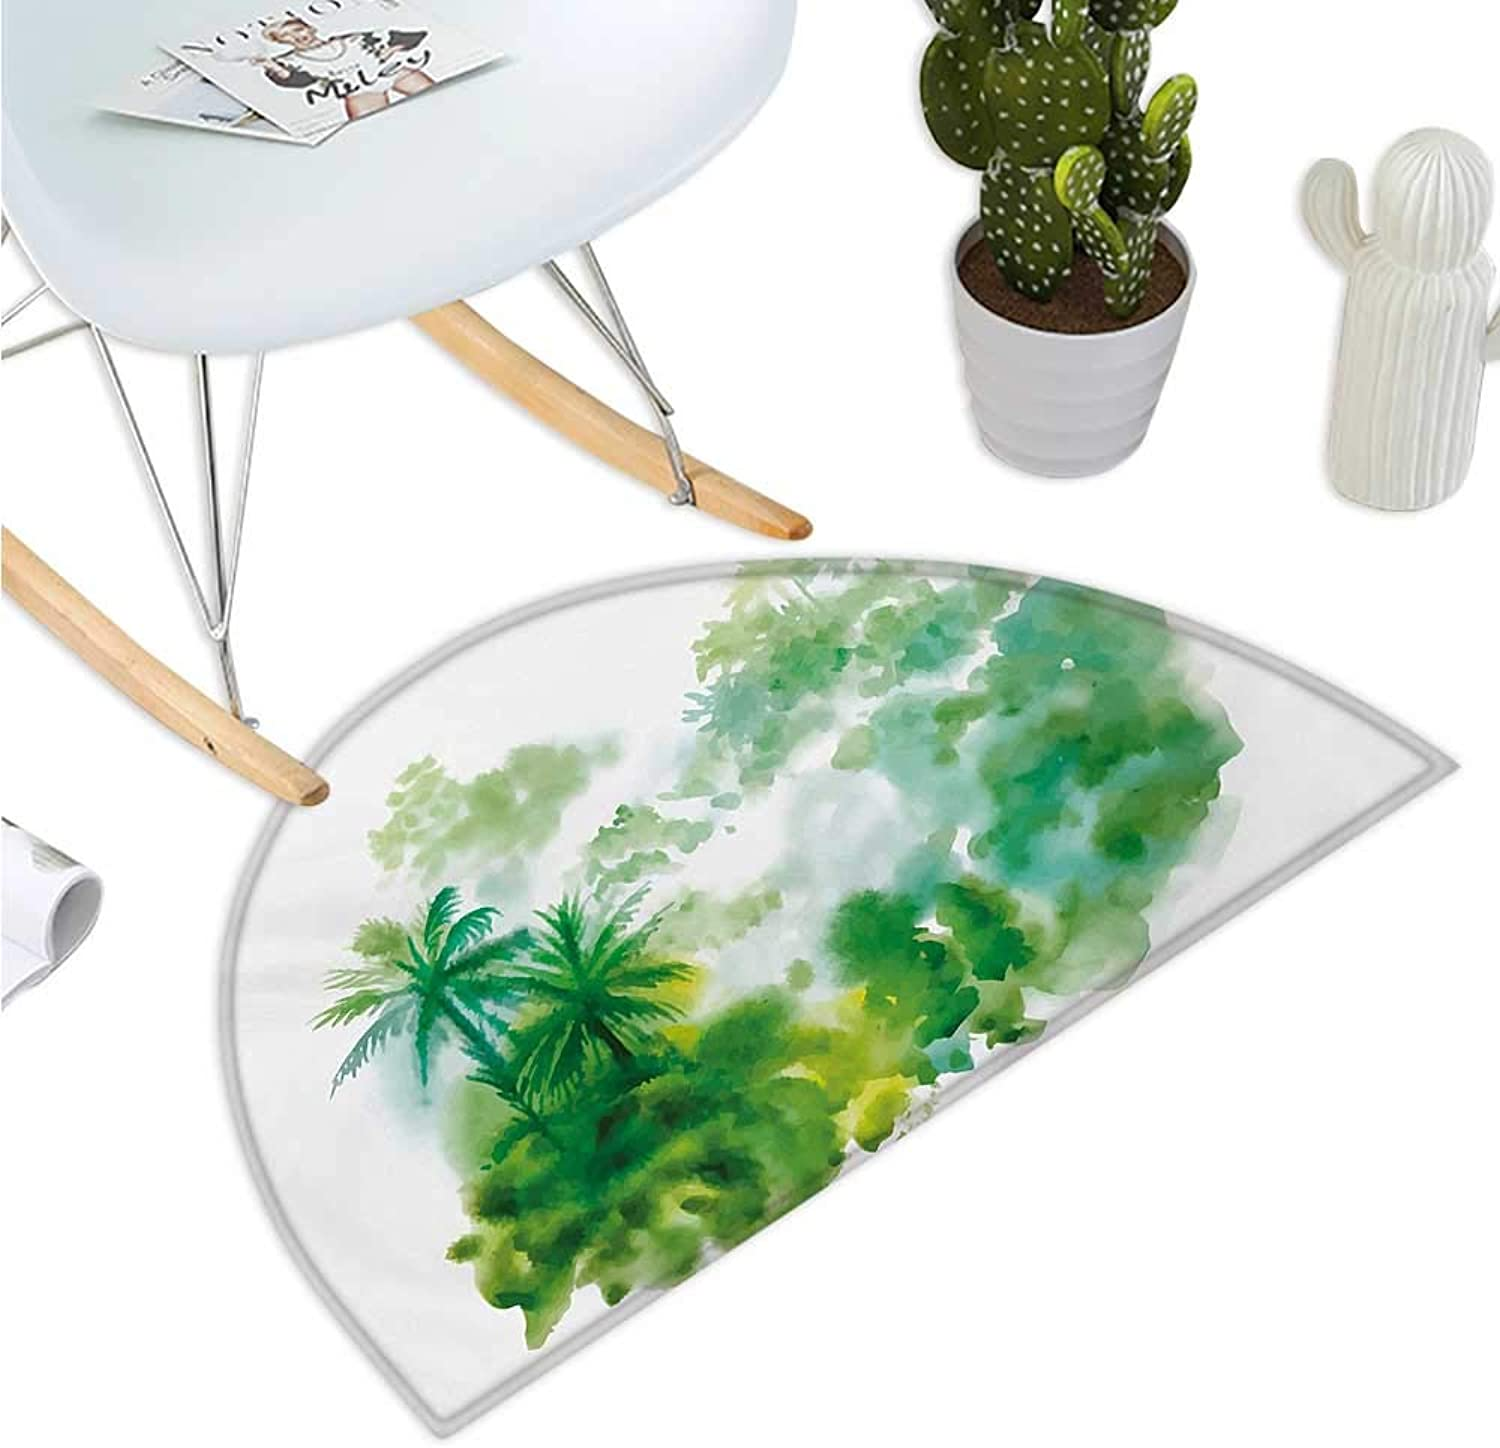 Green Semicircular Cushion Abstract Watercolor Artful Image of Forest Palm Trees Print Halfmoon doormats H 43.3  xD 64.9  Forest Green Pale Green and White